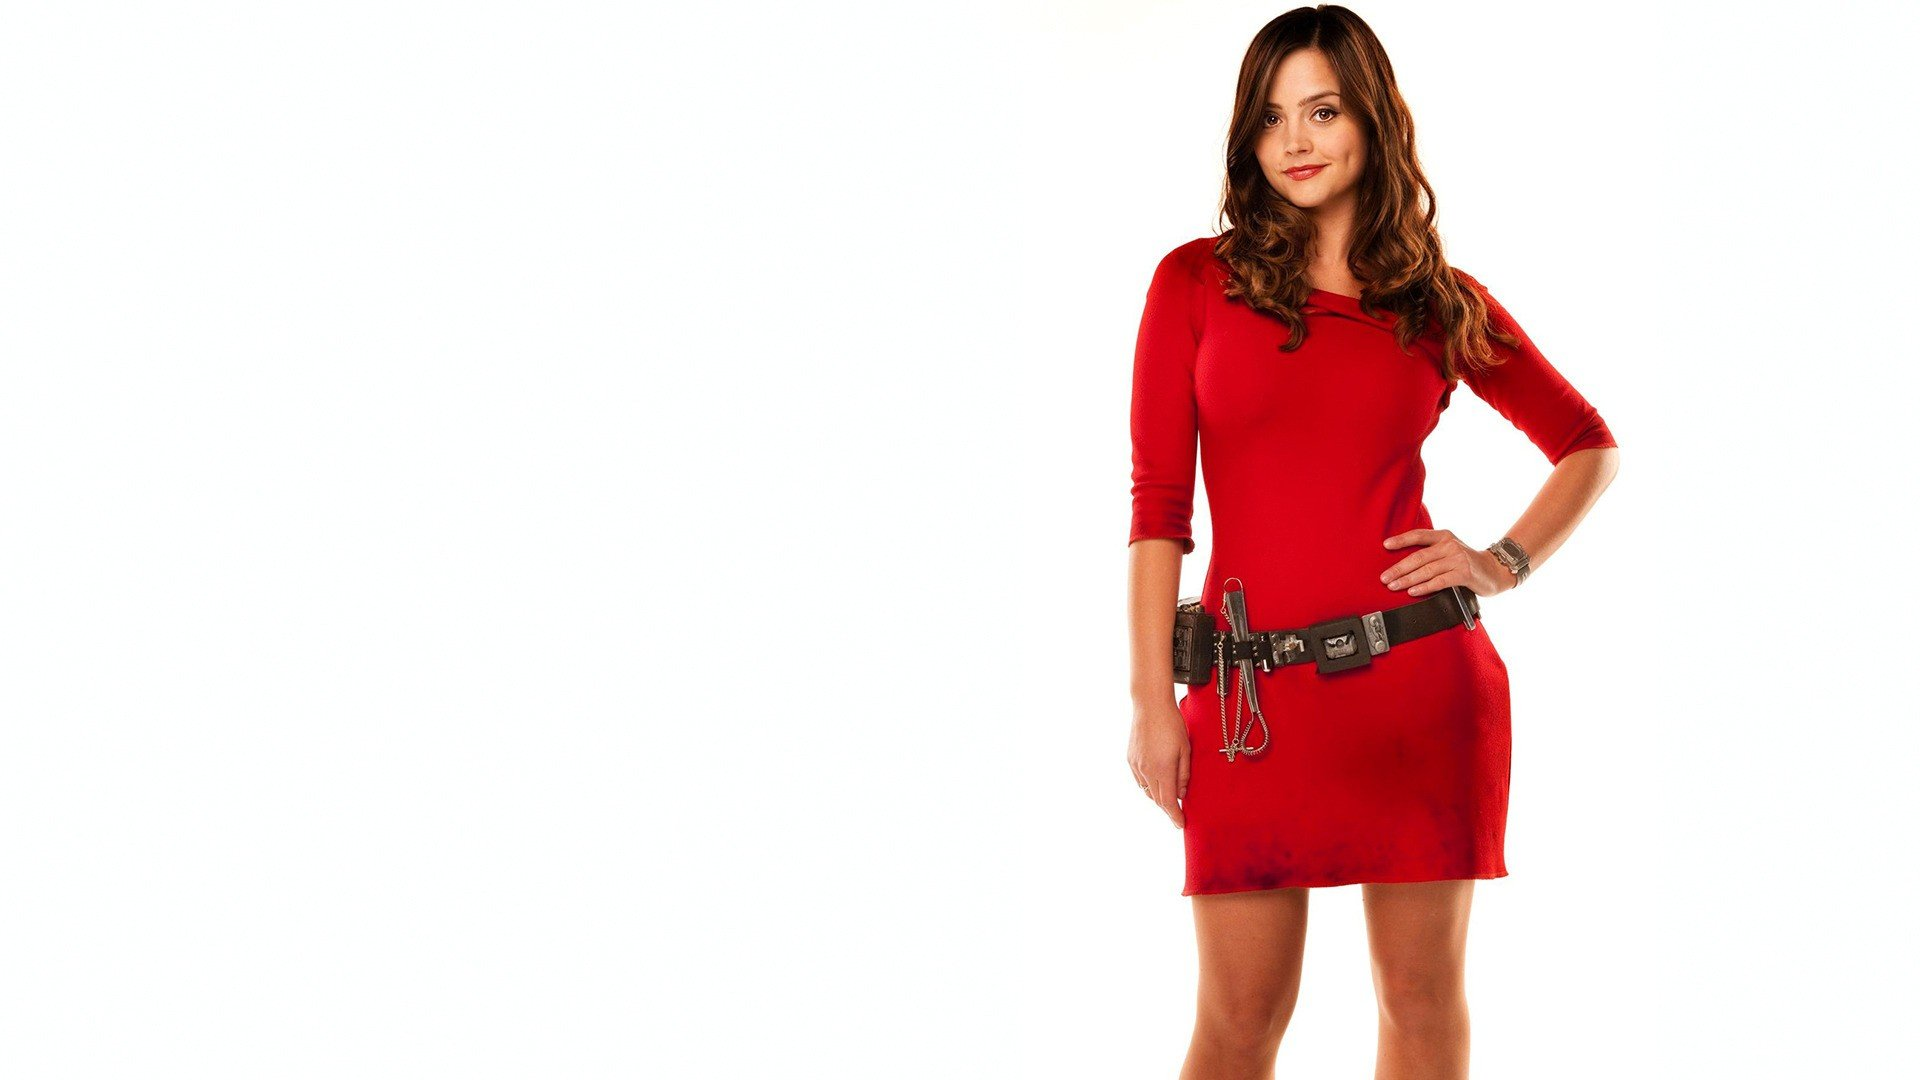 1920x1080 - Jenna-Louise Coleman Wallpapers 20